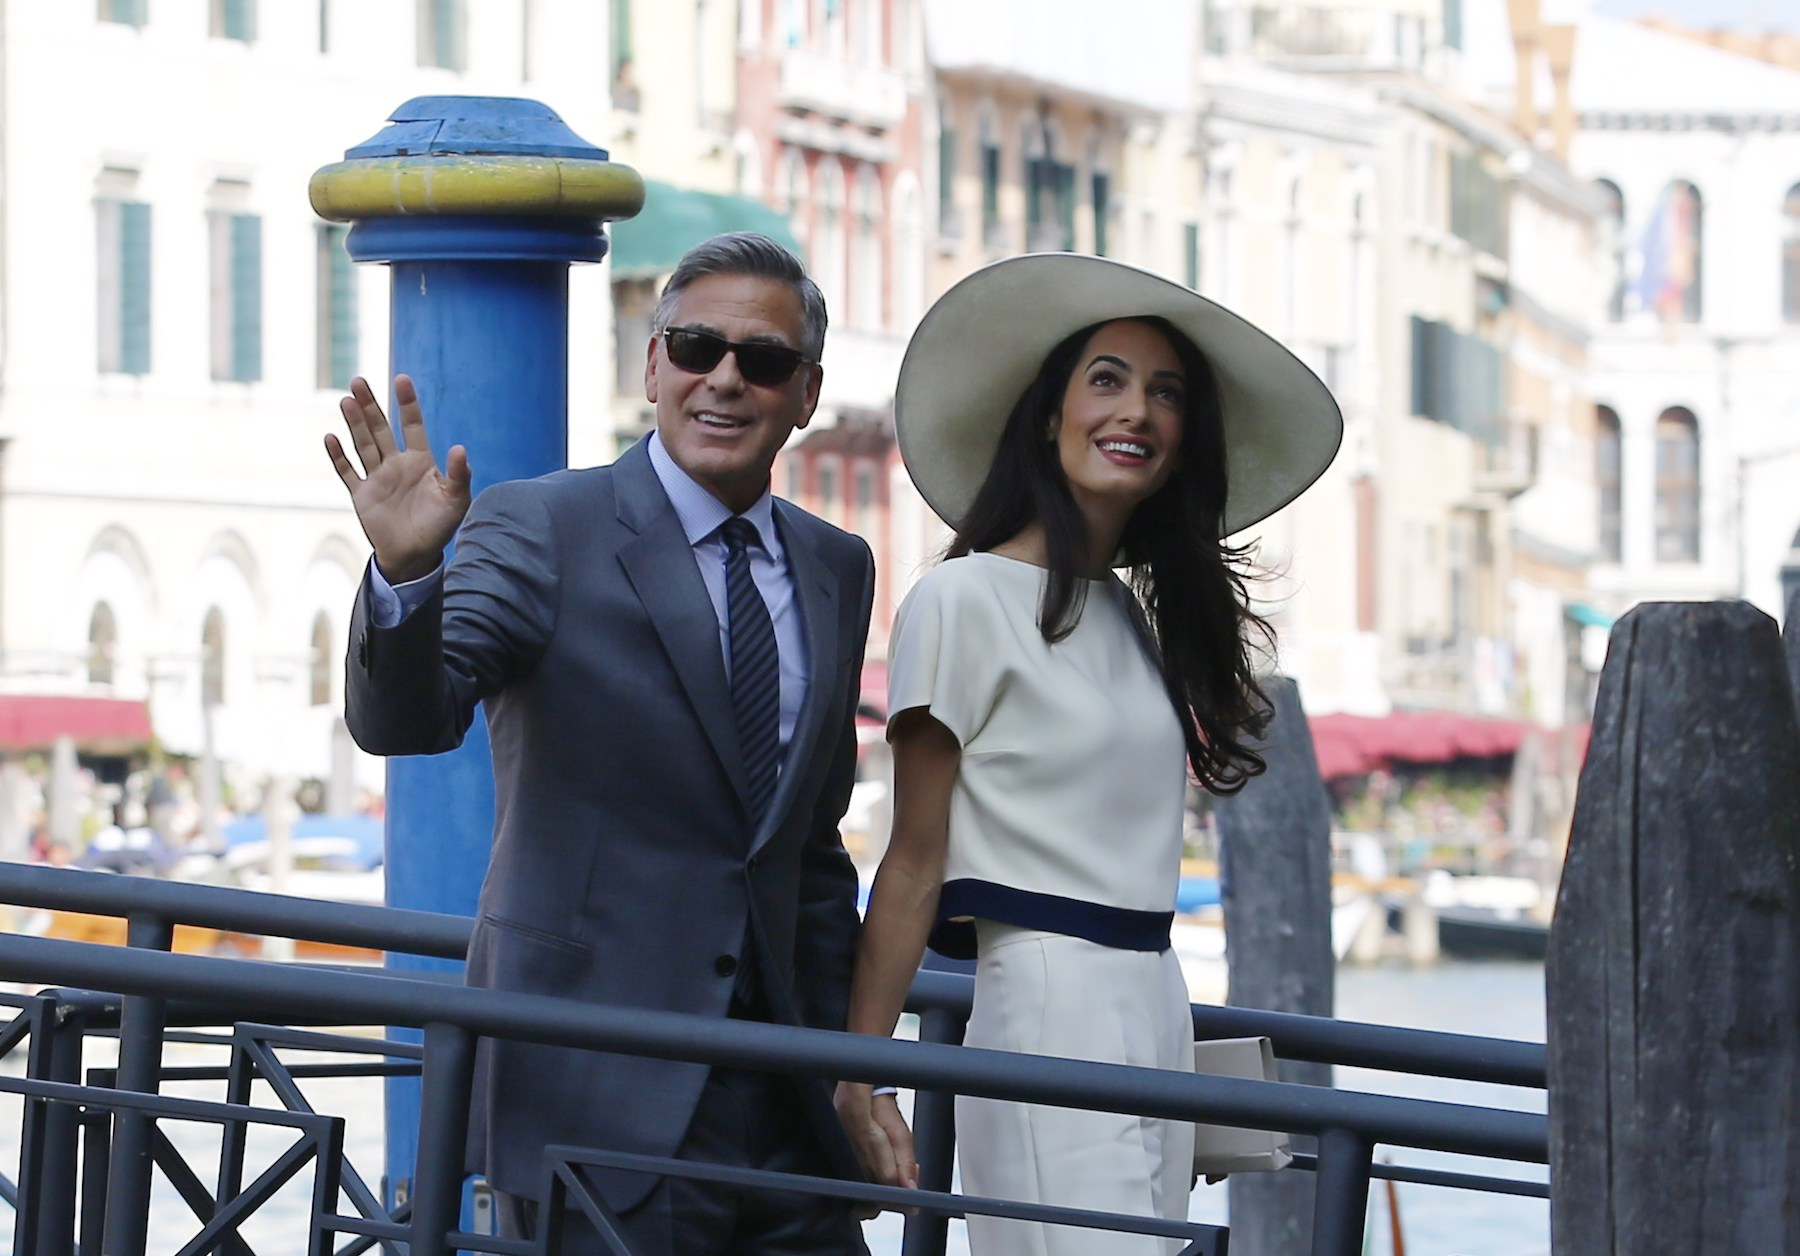 George Clooney Spent Millions On Hotel Rooms For His Wedding Guests